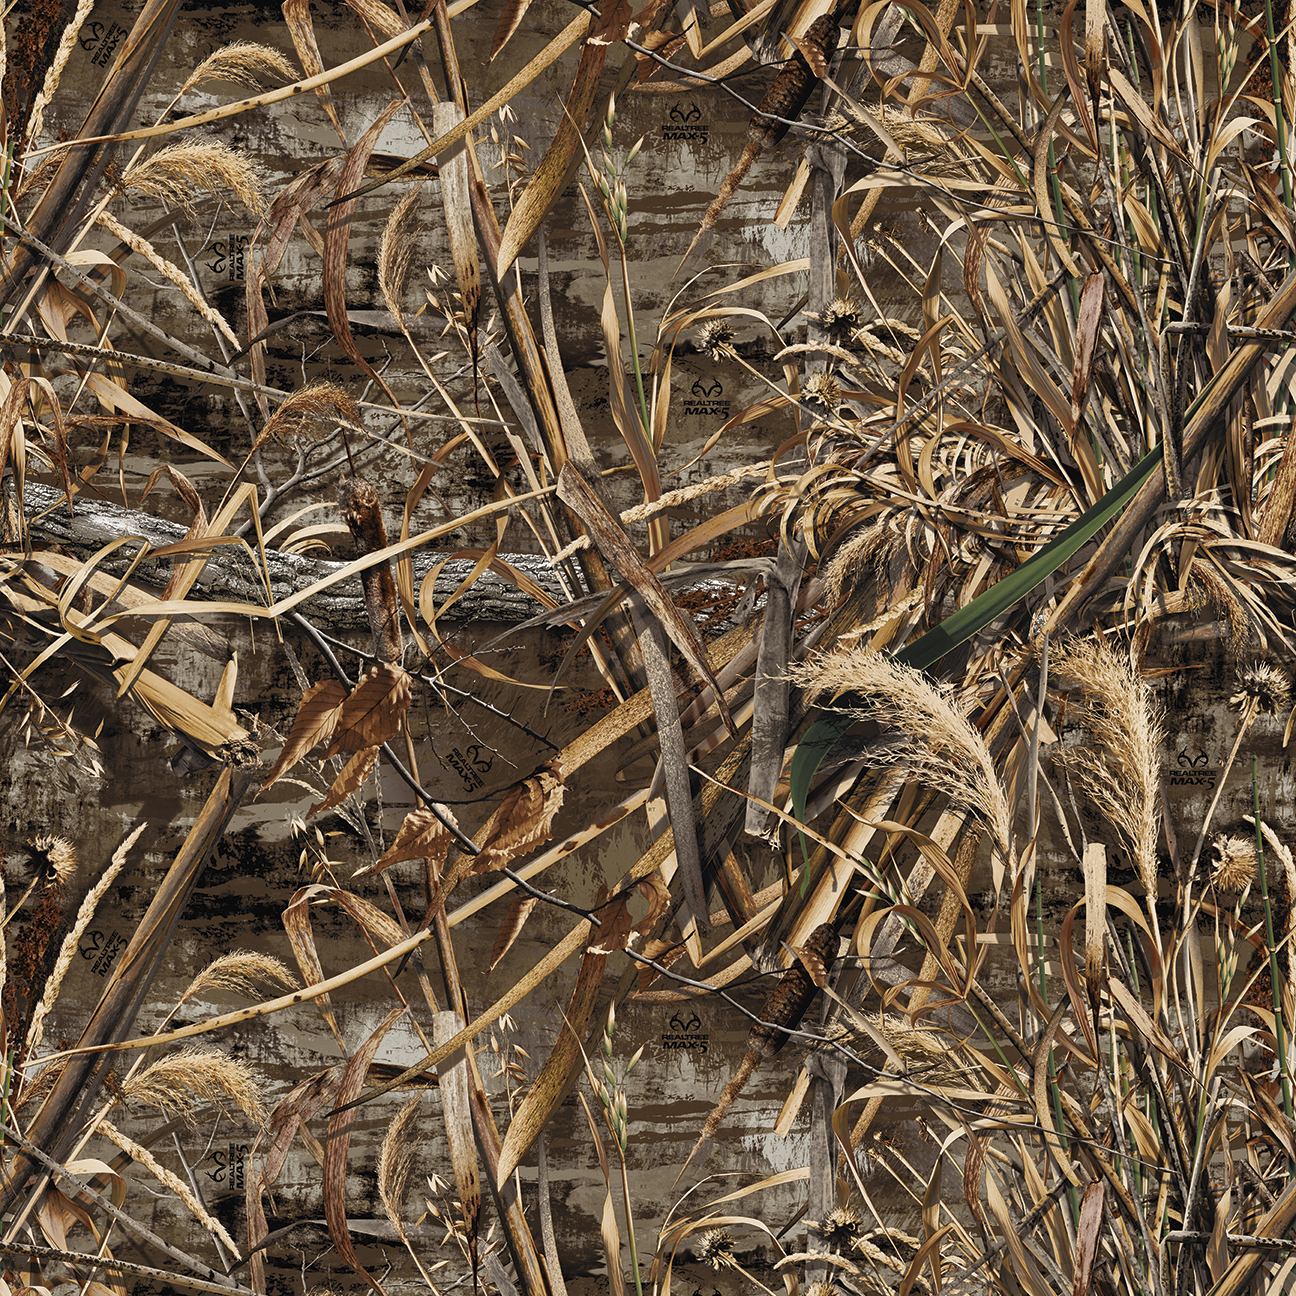 duck hunting camo backgrounds - photo #11